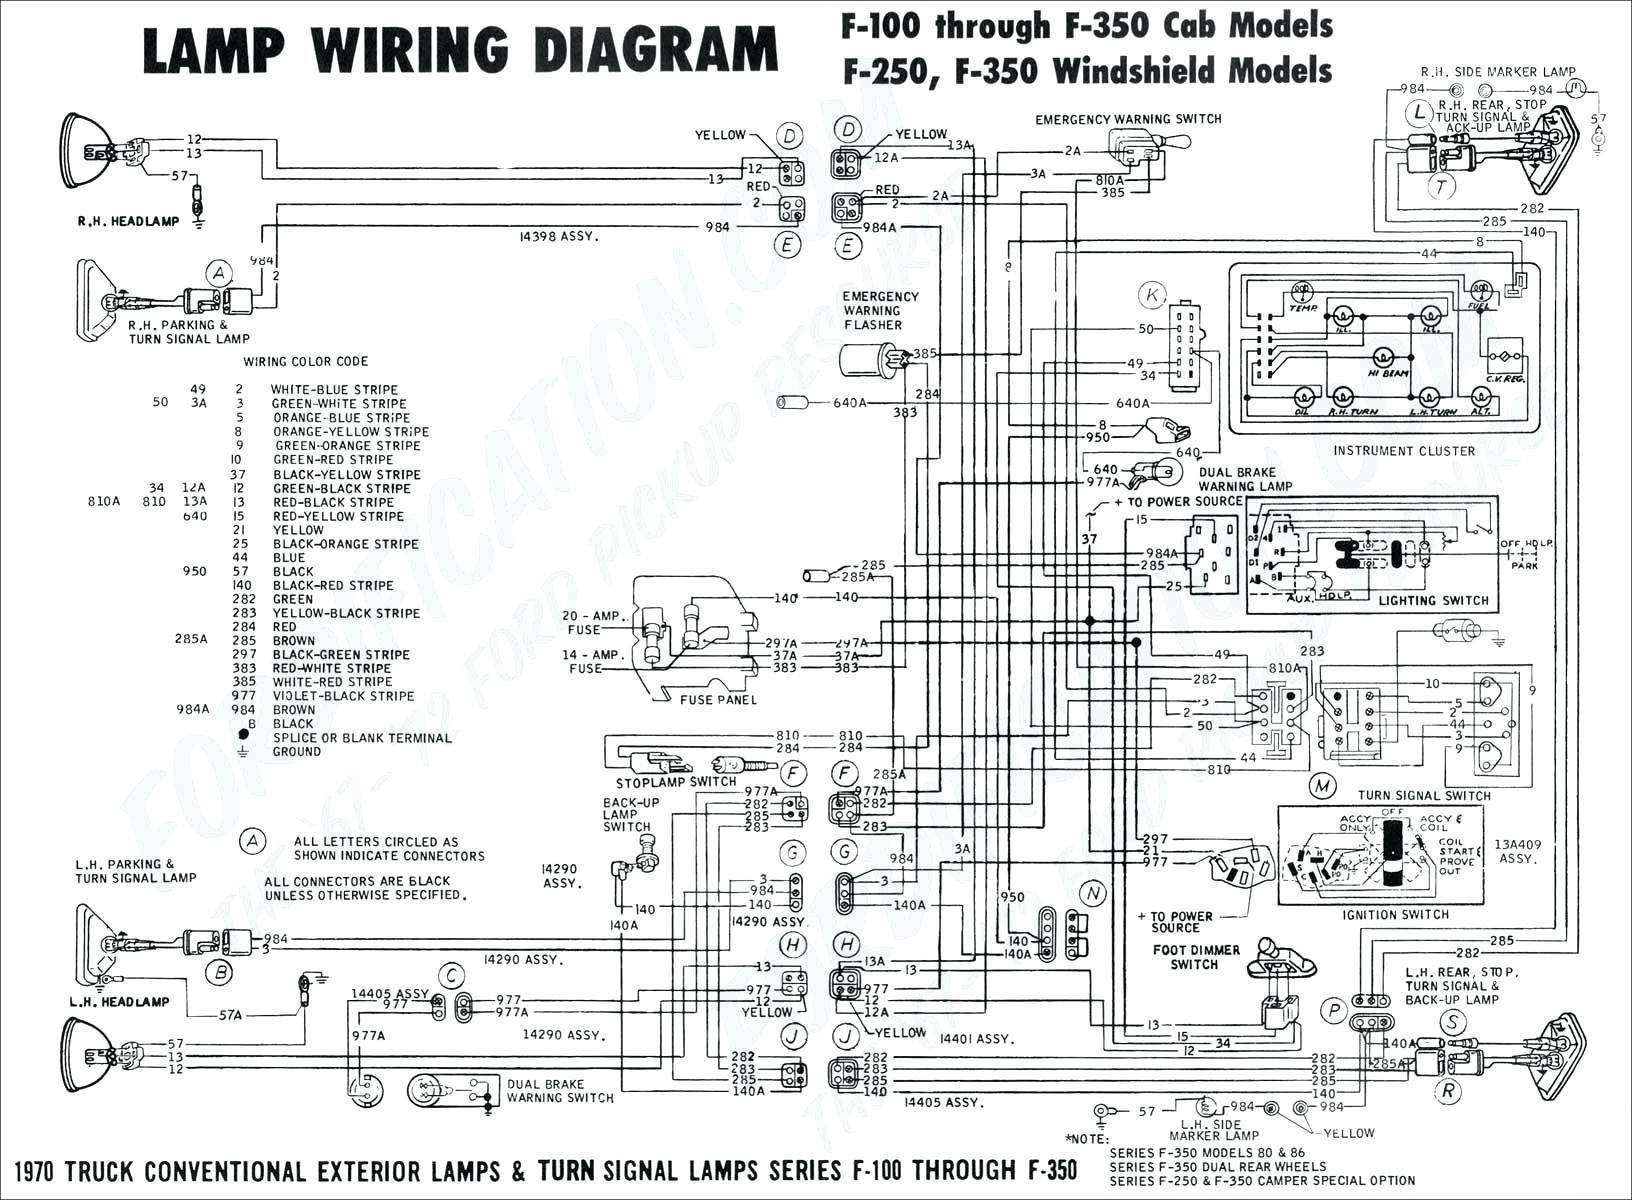 1993 ford F150 Wiring Diagram 1979 ford F 250 Starter Wiring Trusted Wiring Diagrams Of 1993 ford F150 Wiring Diagram